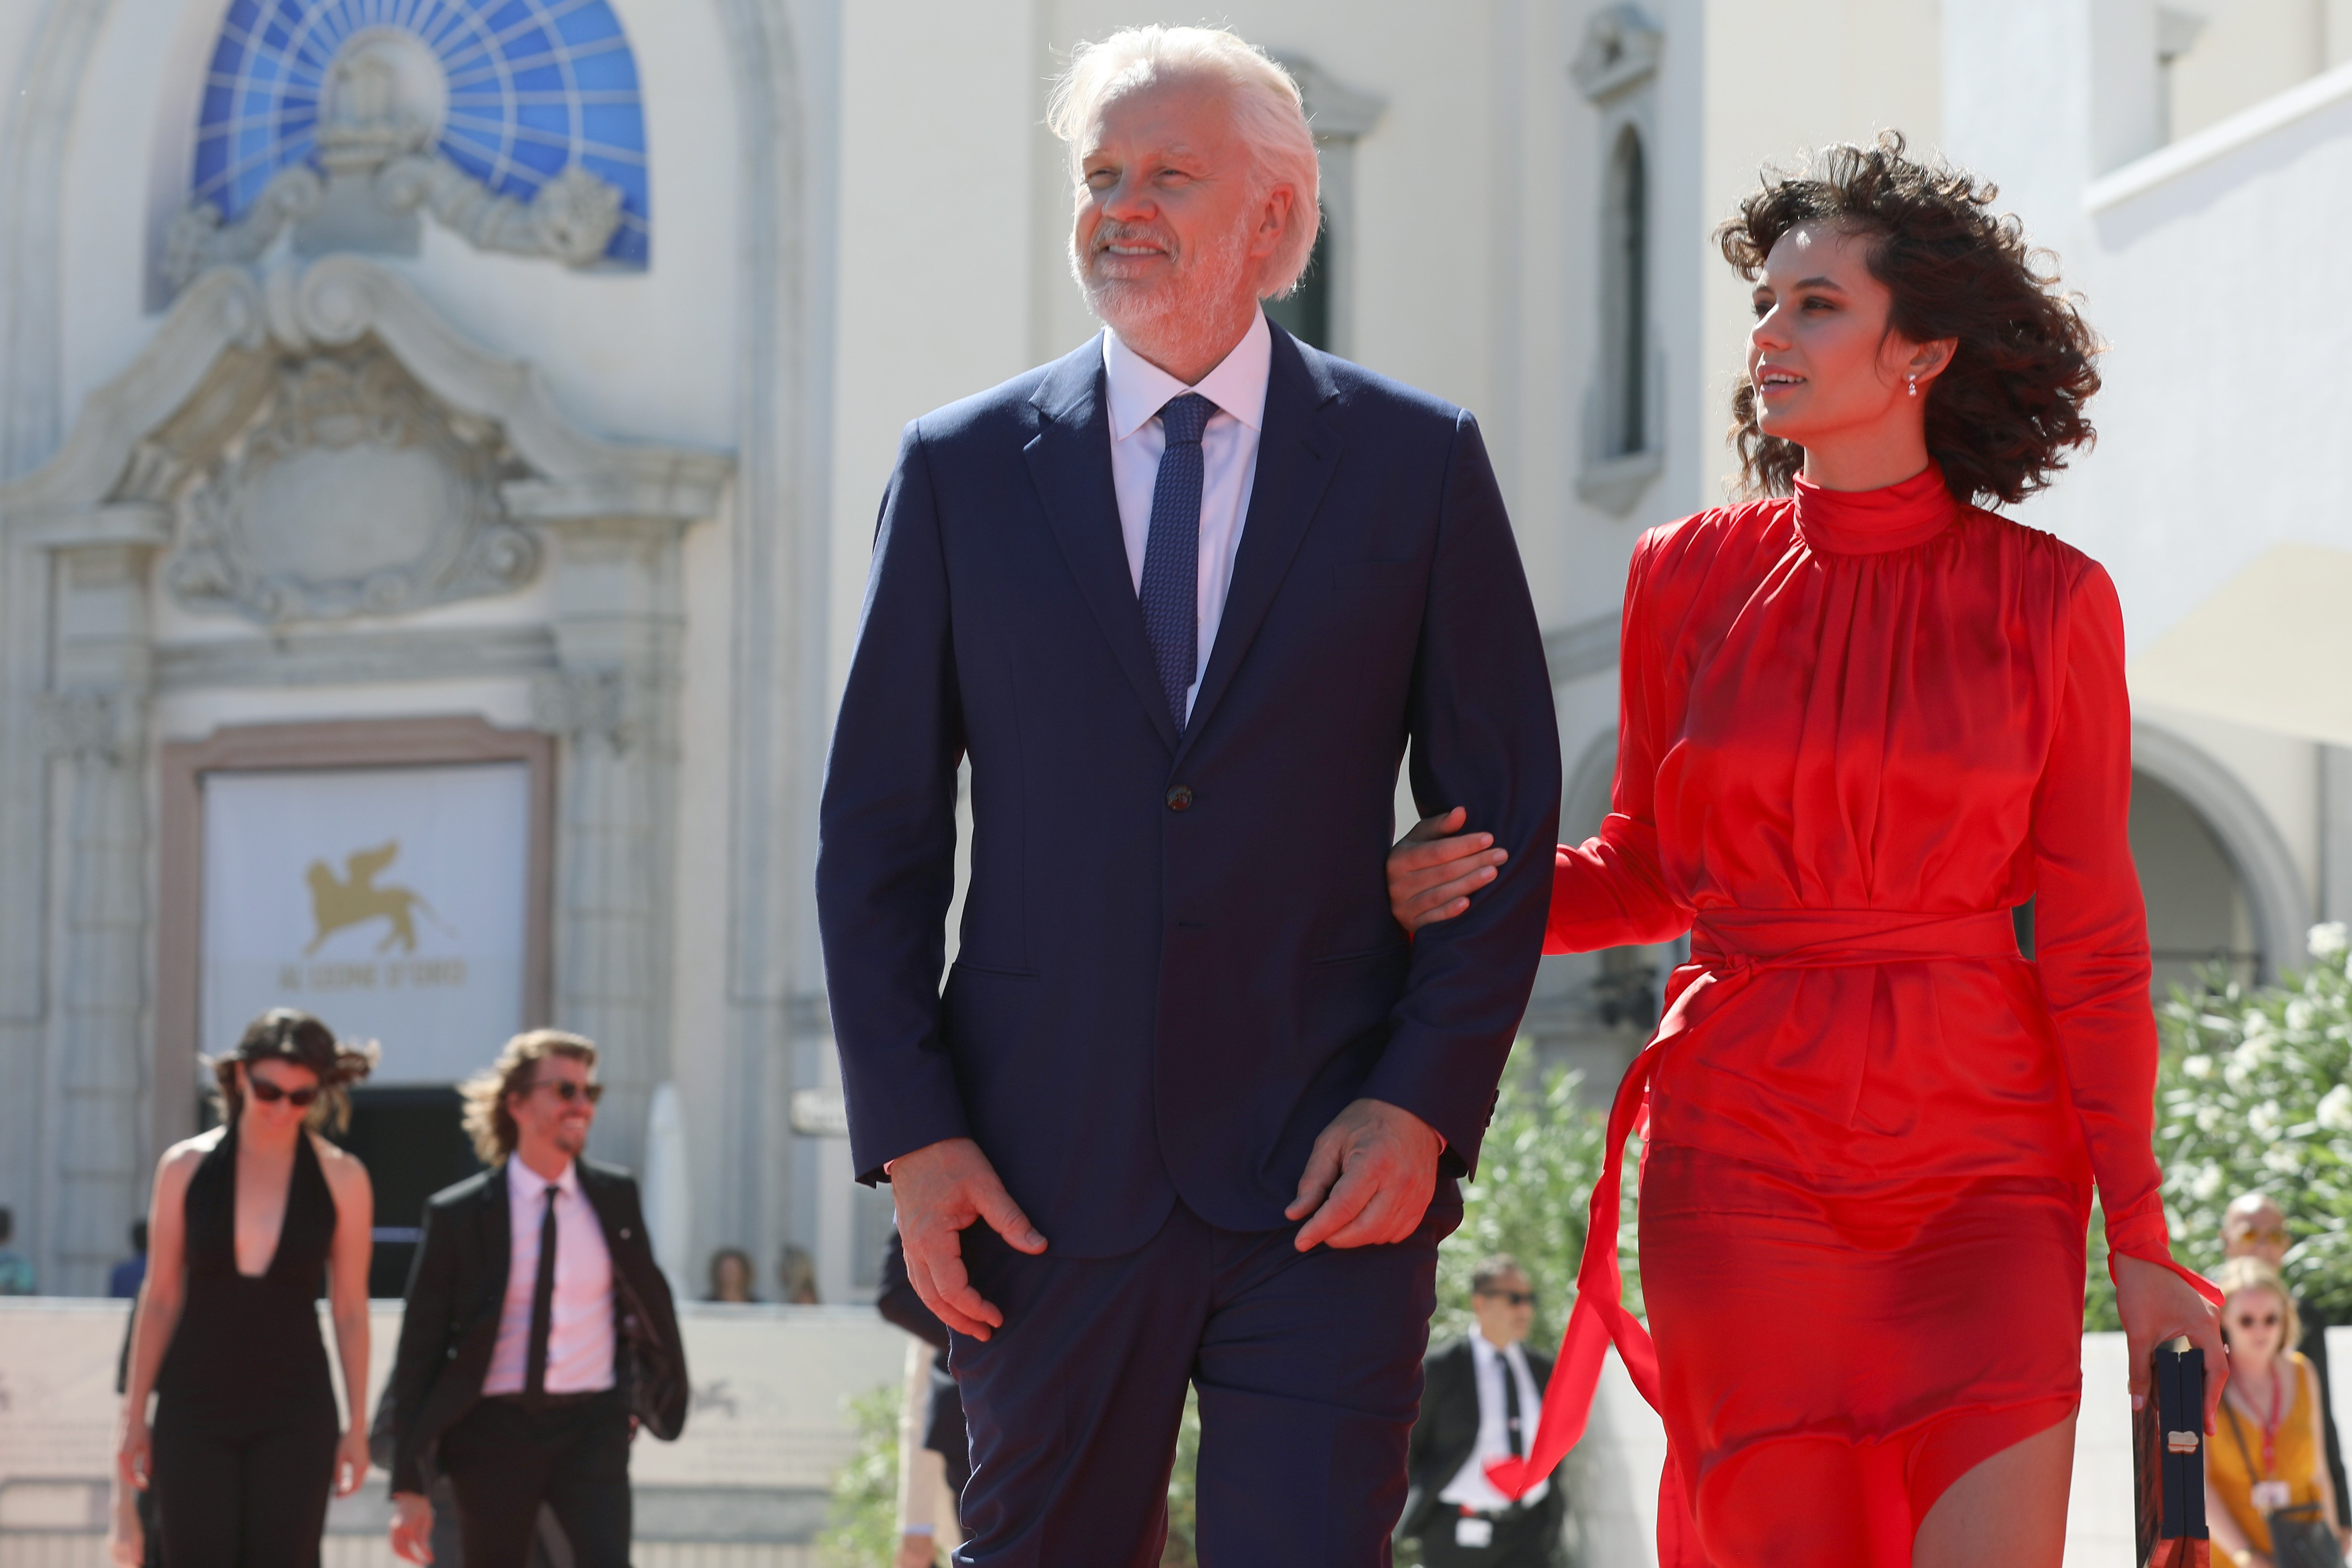 Tim Robbins and Gratiela Brancusi at the Venice Film Festival, September, 2019.   Photo: Getty Images.